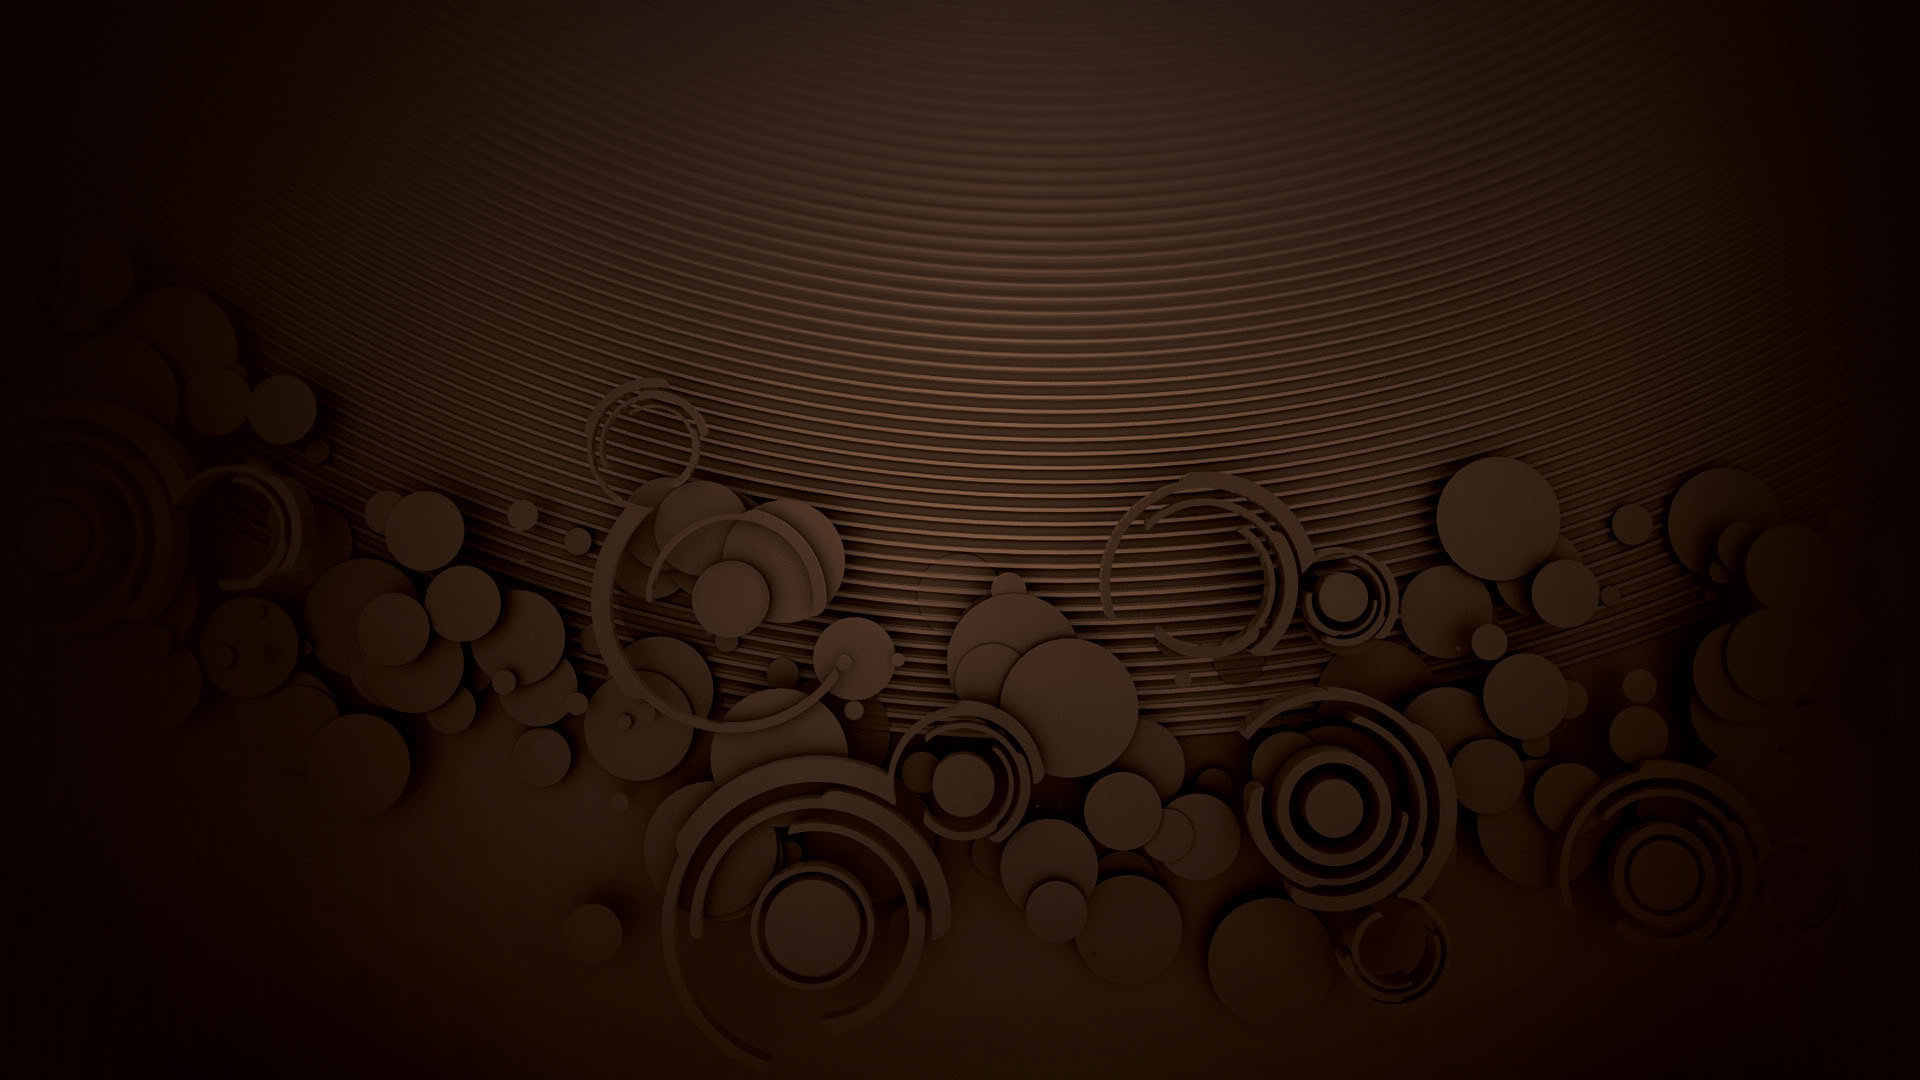 Free download Brown background ID:45370 hd 1920x1080 for PC